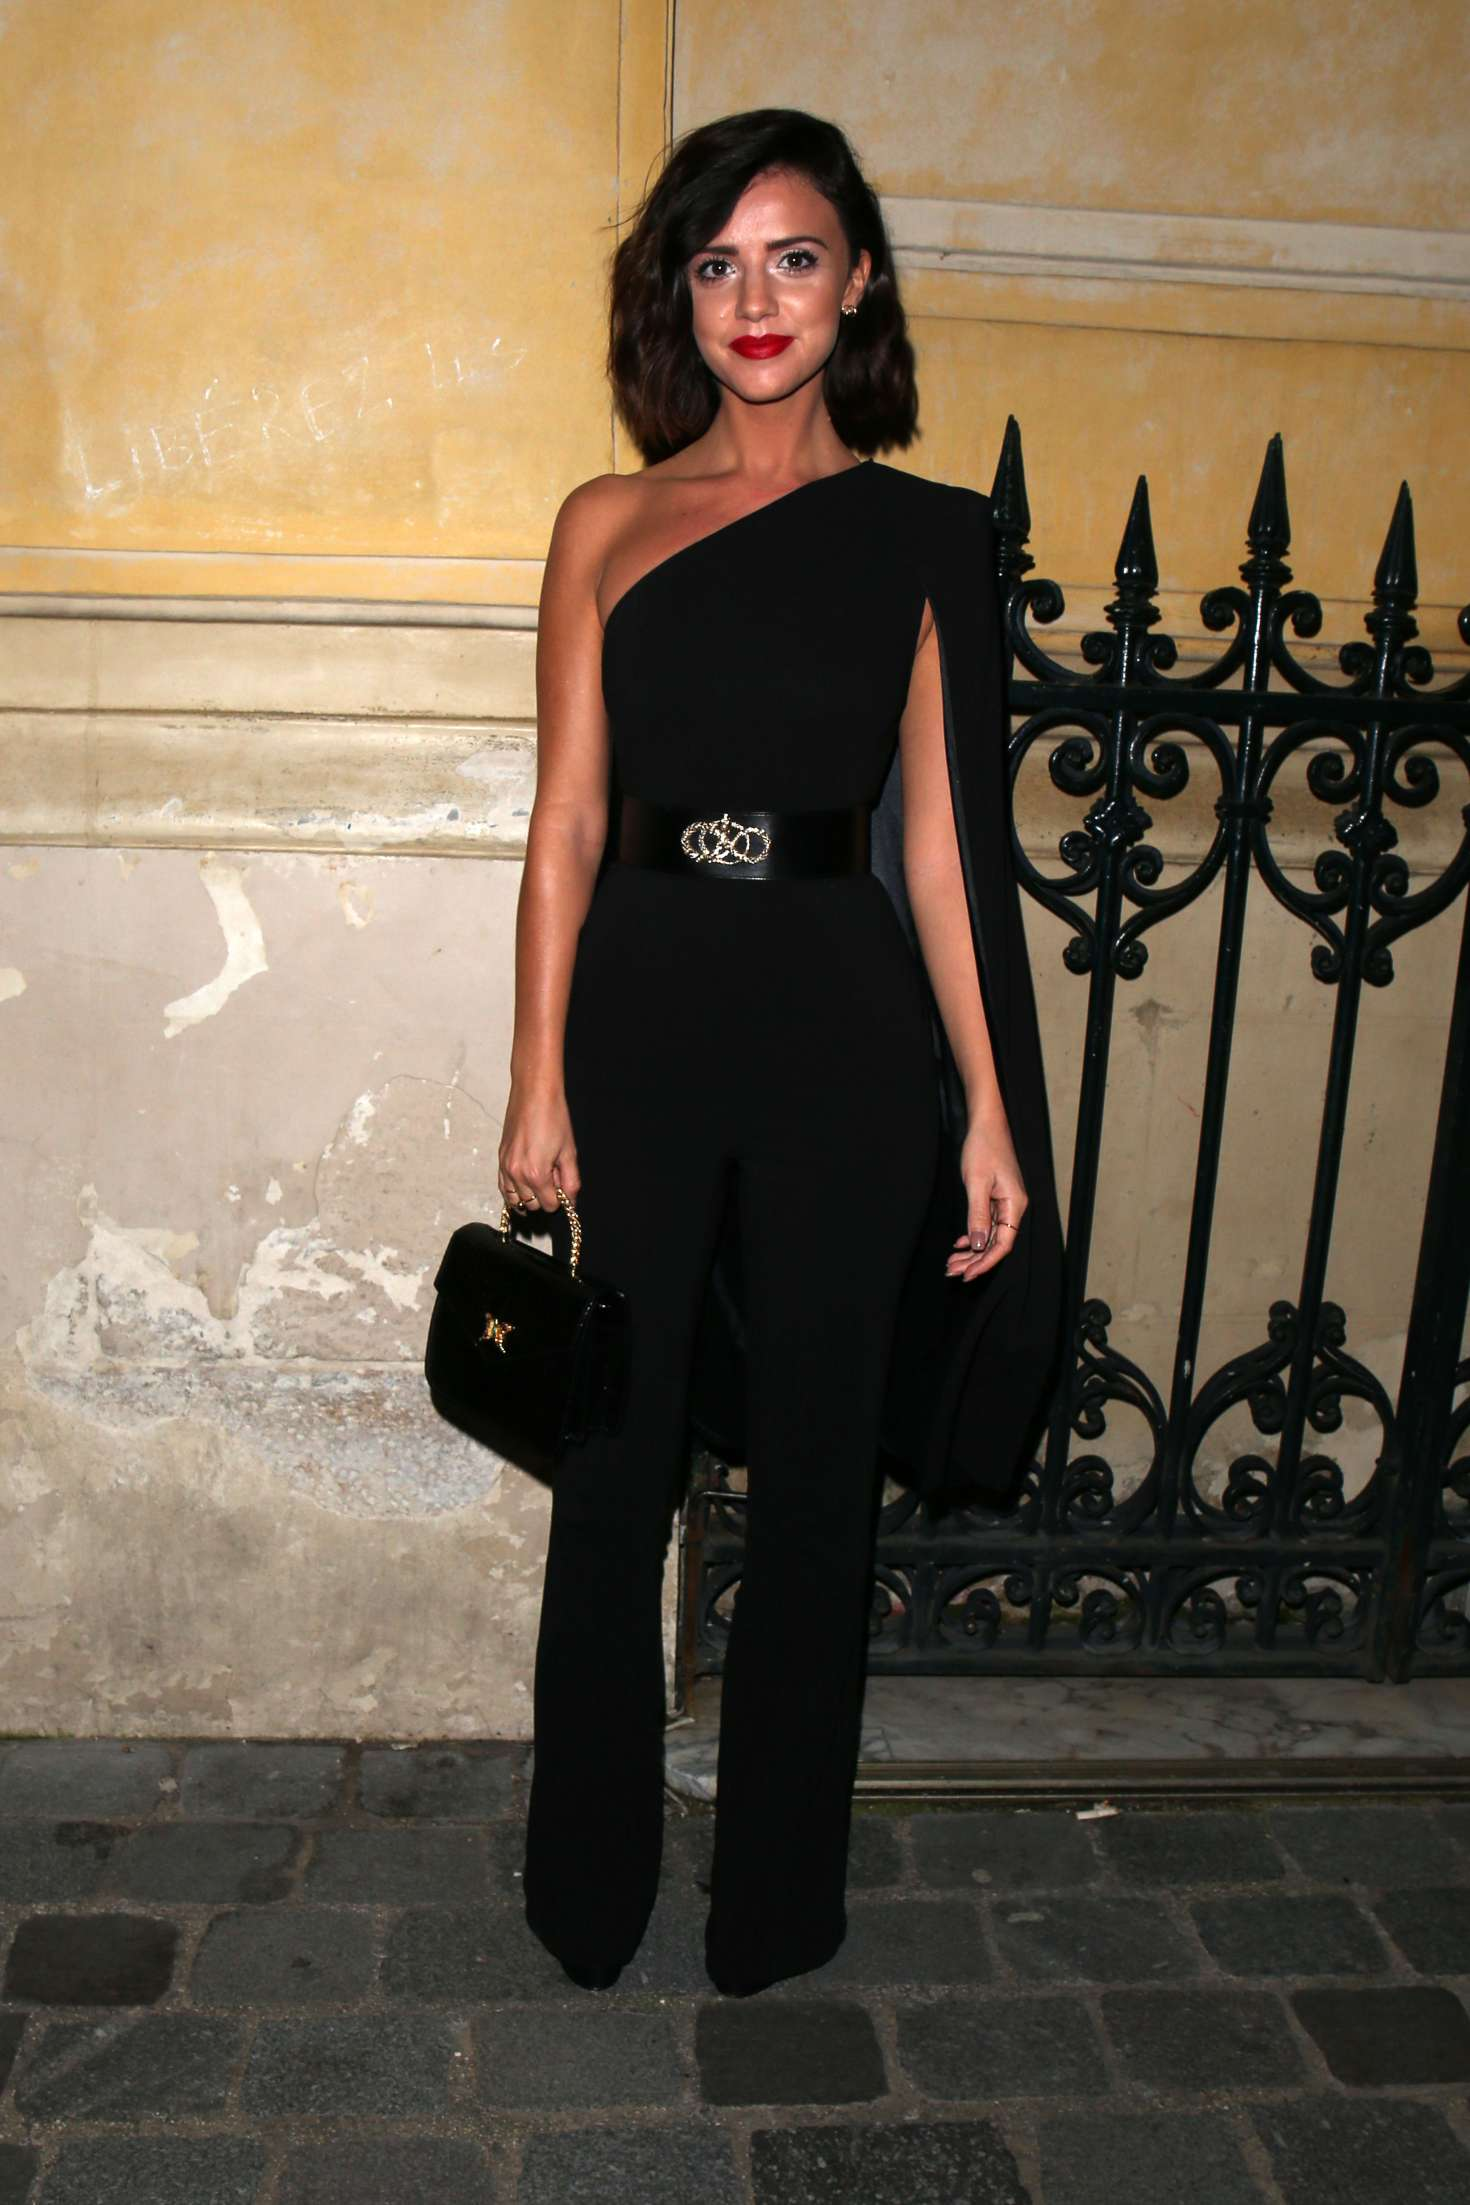 Lucy Mecklenburgh 2018 : Lucy Mecklenburgh: Arriving at Gun Pei Fashion Show 2018 -01